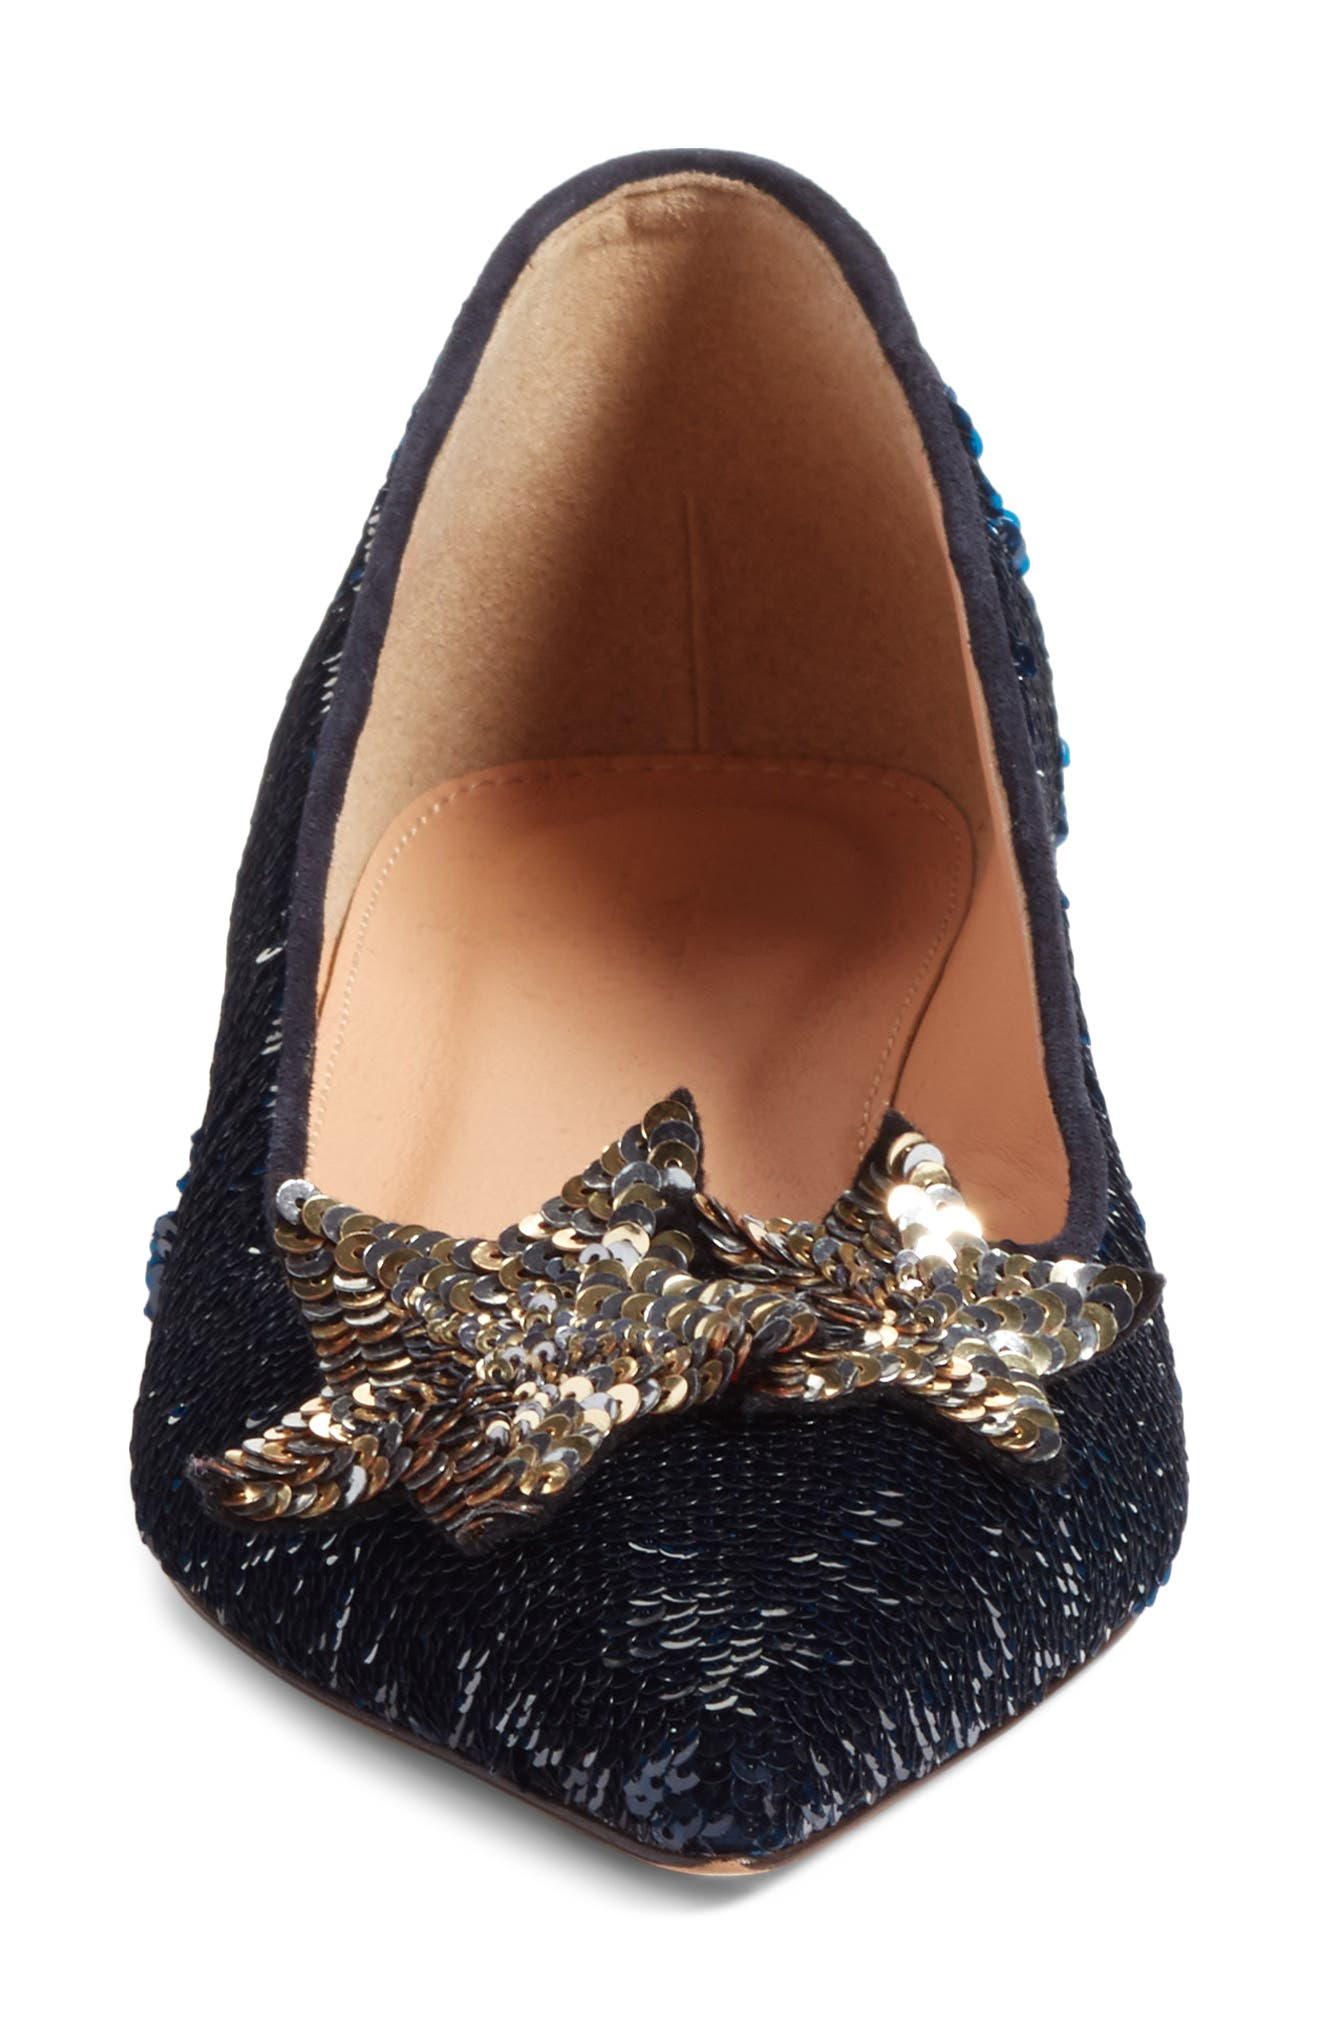 Harlech Sequin Star Flat,                             Alternate thumbnail 4, color,                             Navy Sequin Fabric